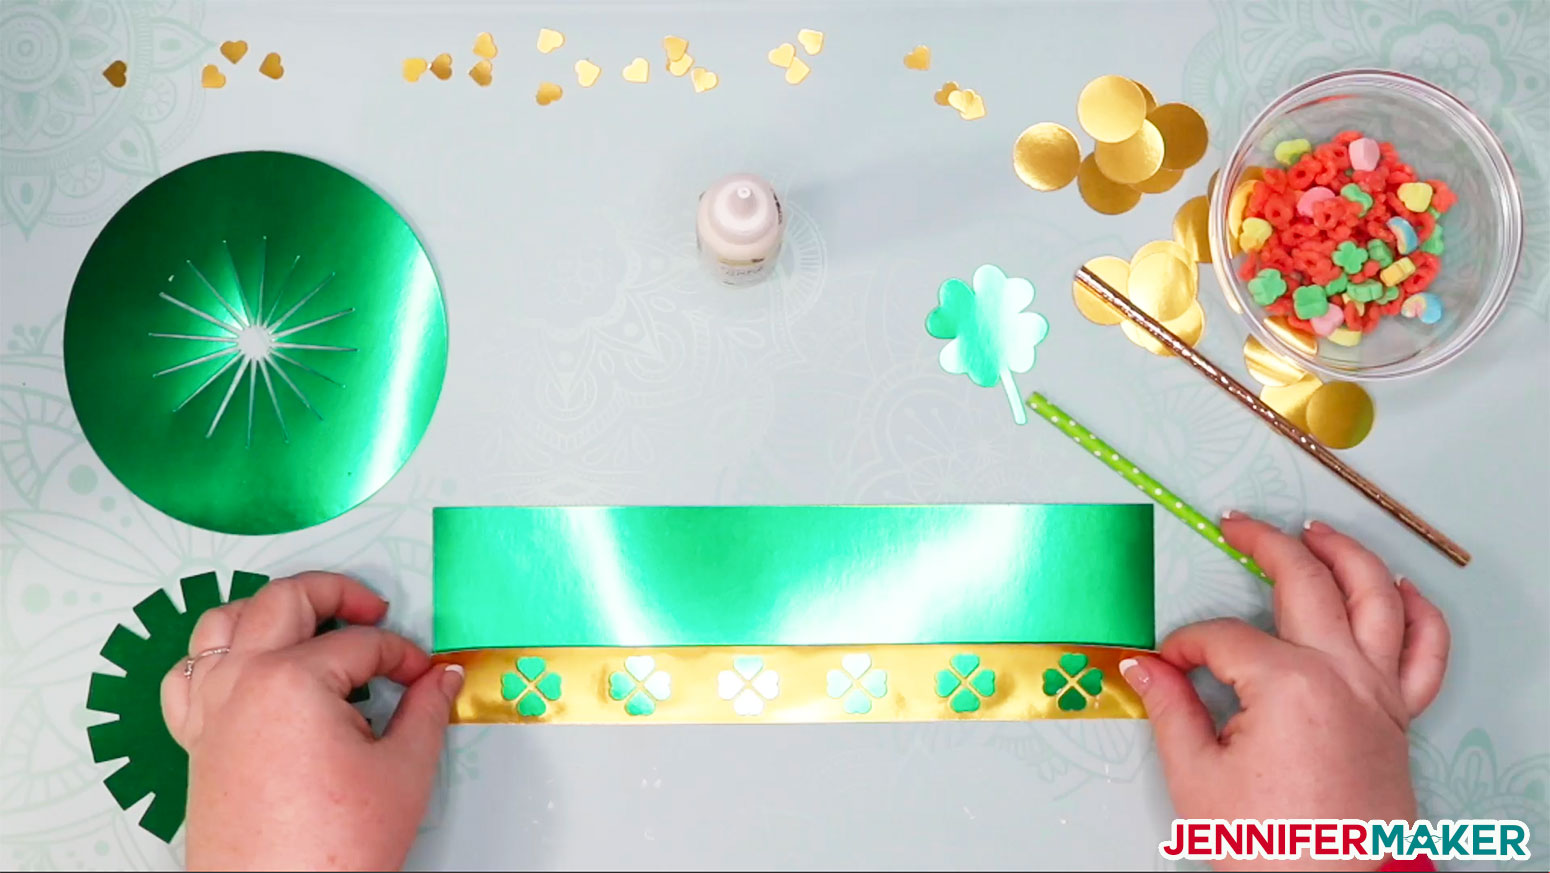 Attaching the gold hat band to the green paper hat to make a DIY paper hat and leprechaun trap